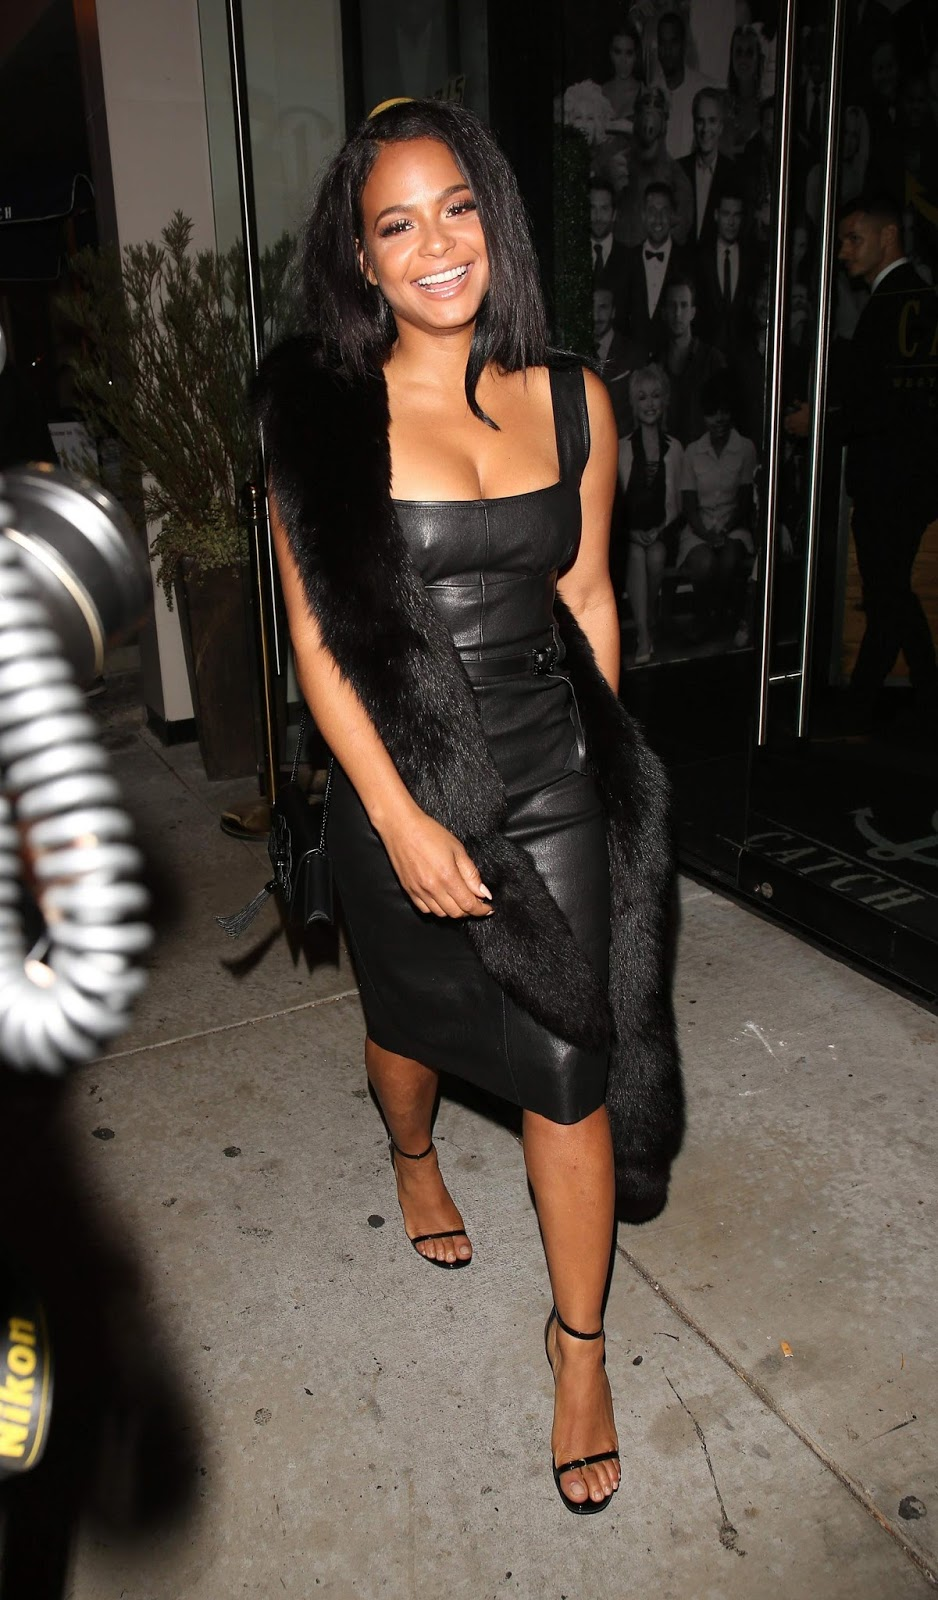 Lovely Ladies in Leather: Christina Milian in a leather dress Christina Milian